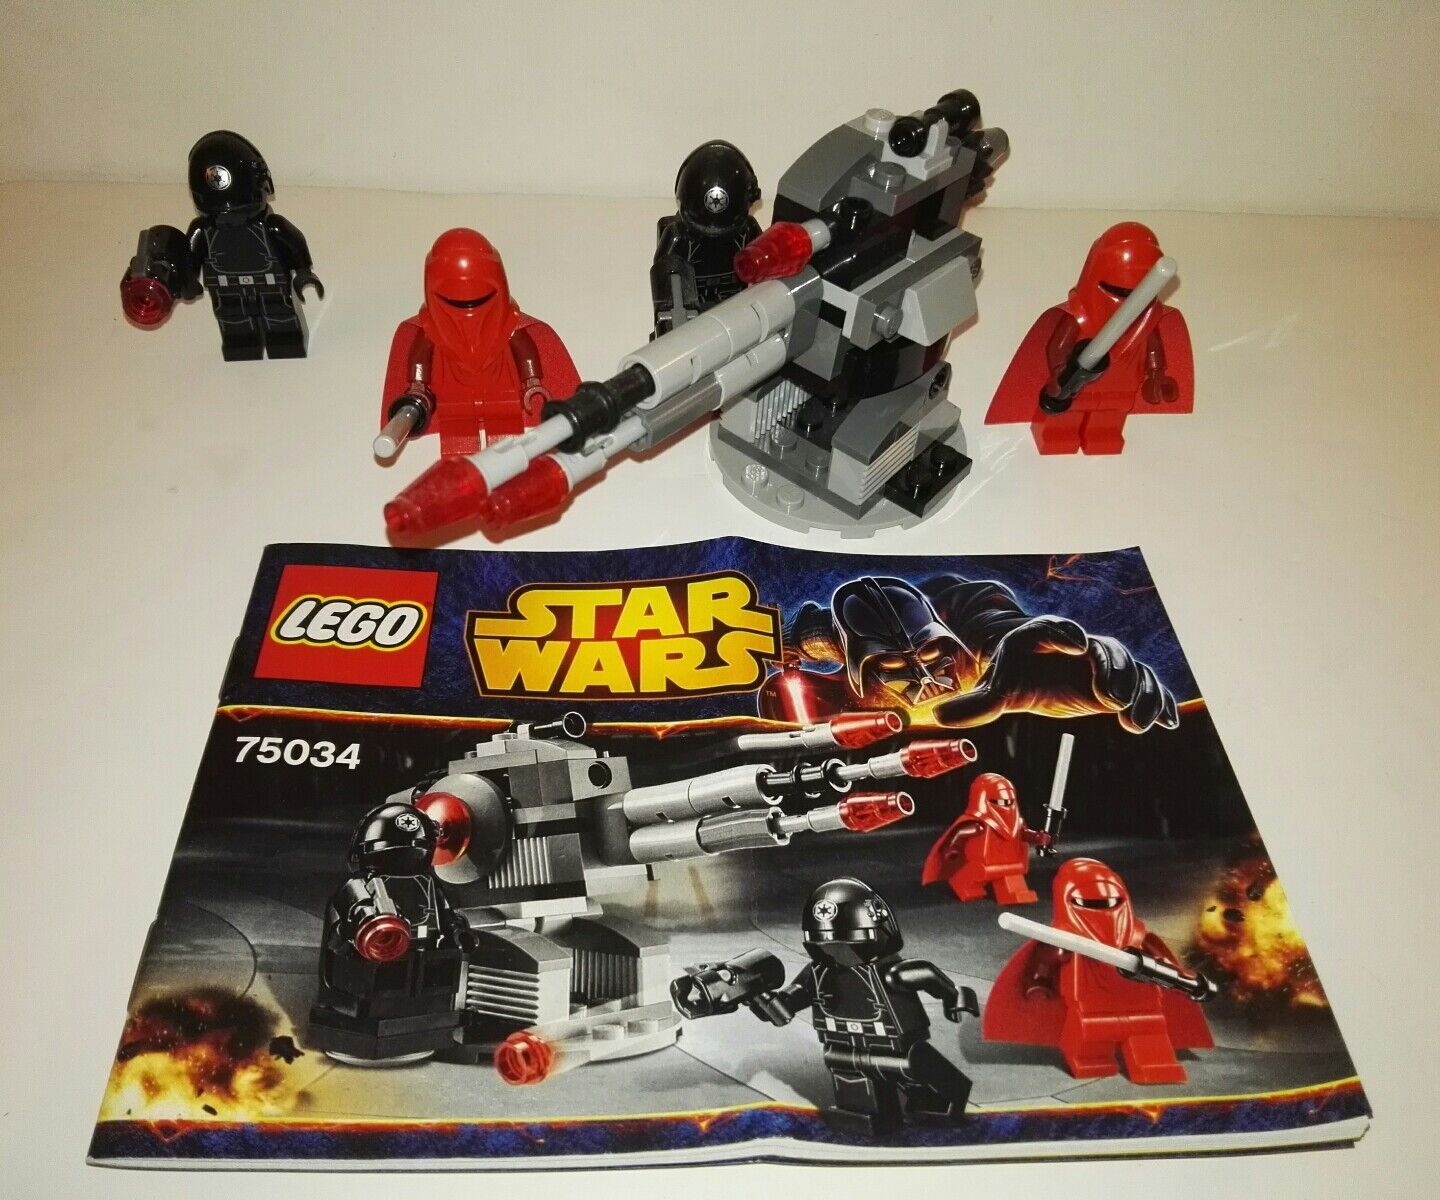 Lego Nxkohx7255 Death Star Troopers75034Microfighters Wars 0XnOP8ZkNw